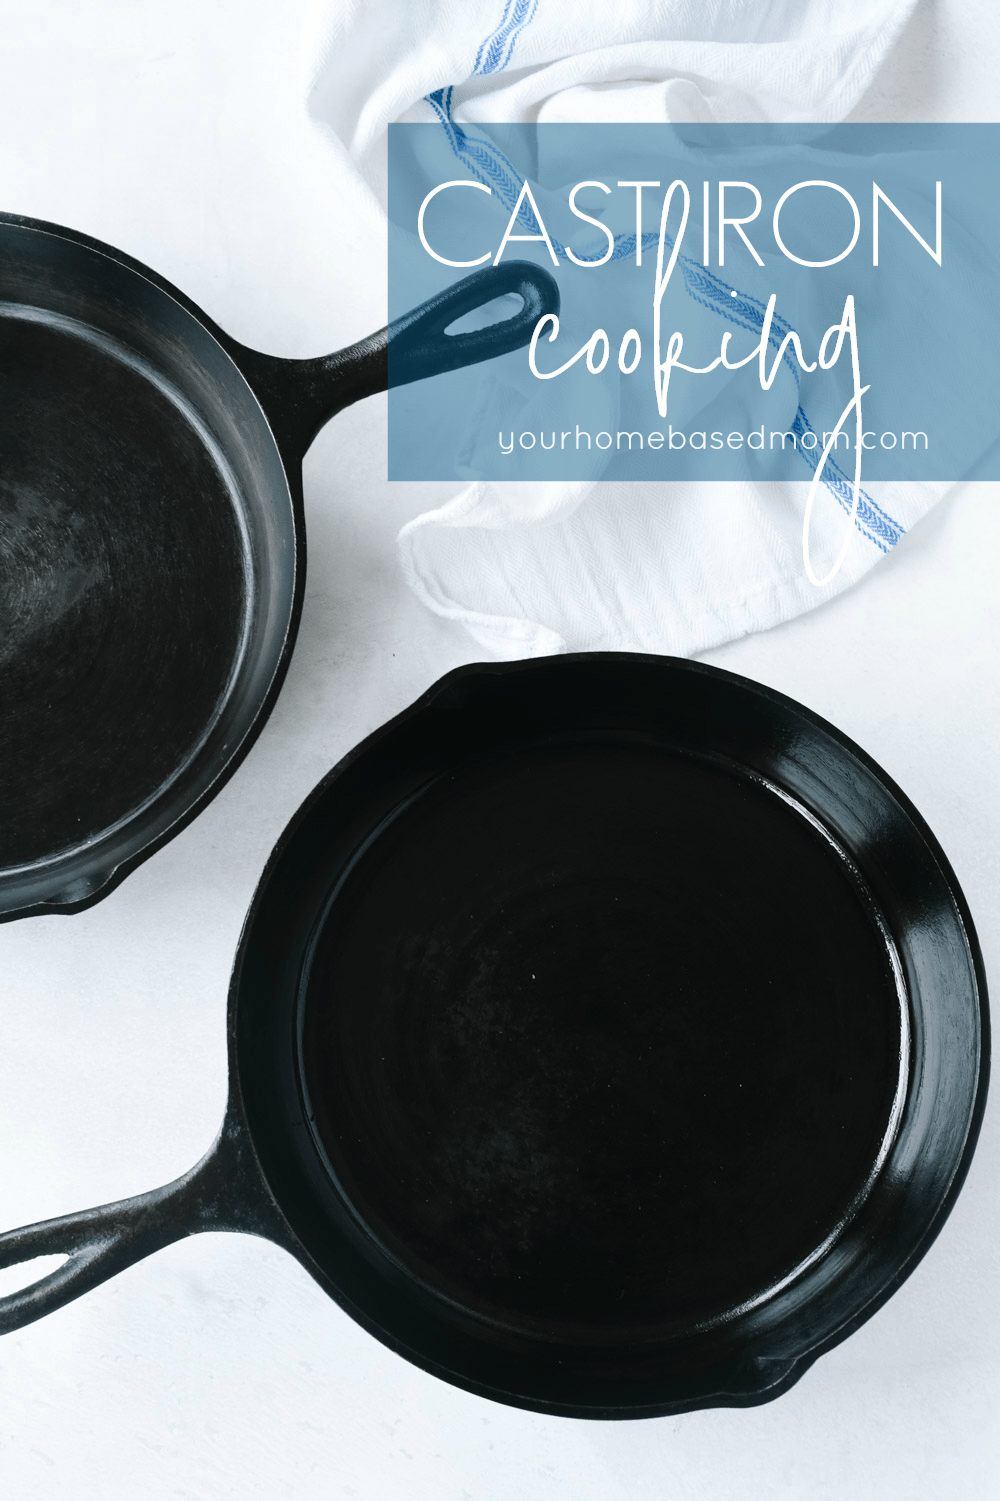 two cast iron pans and a towel